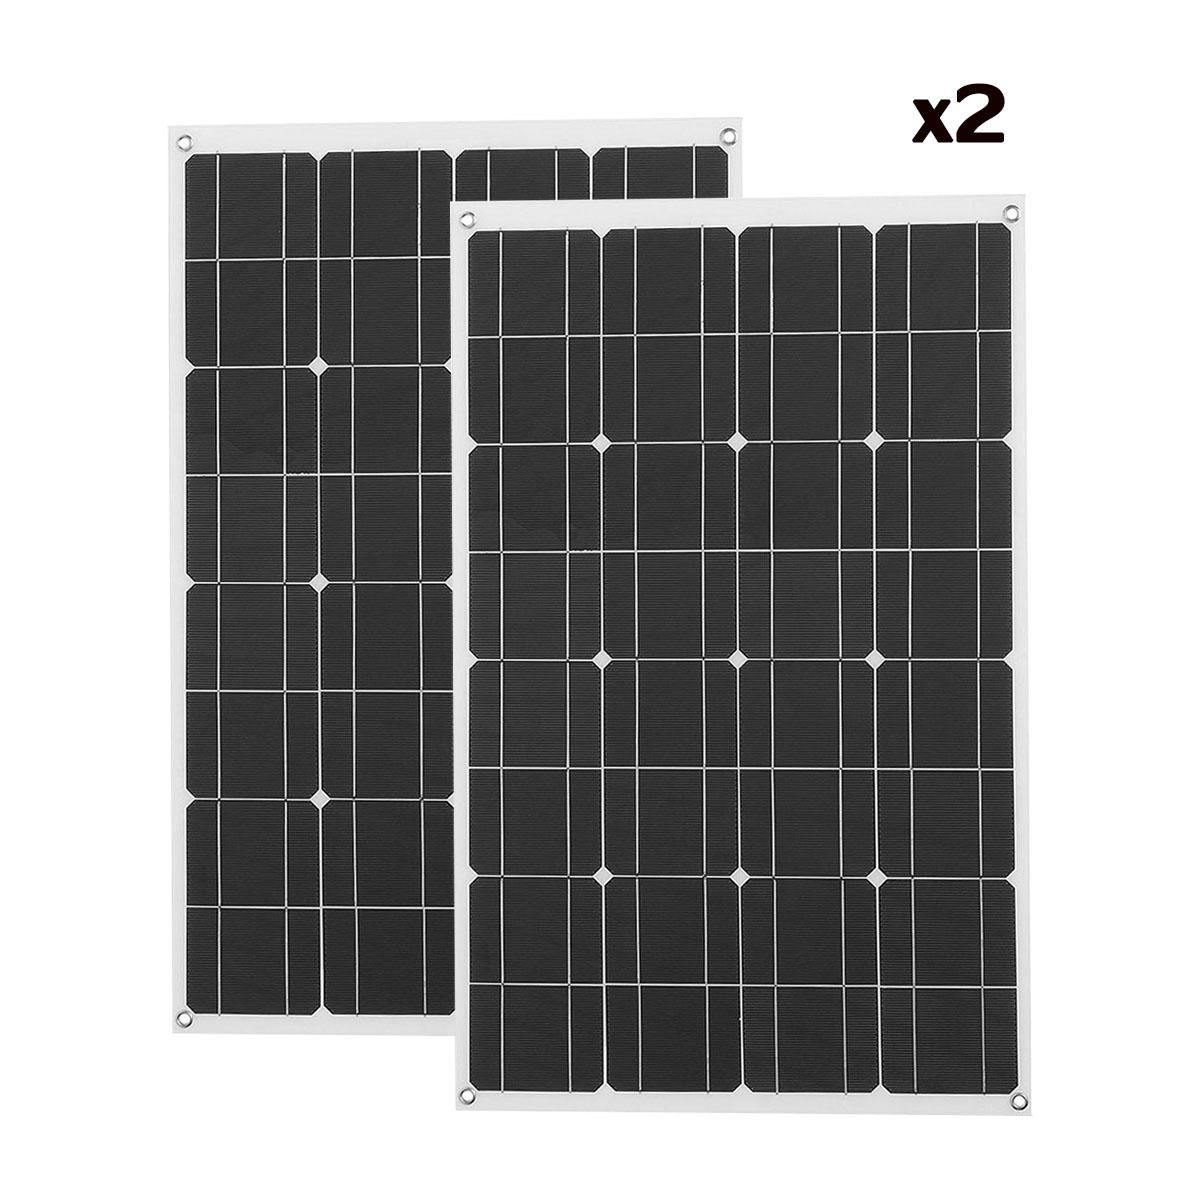 Us 213 70 Elfeland El 02 160w 2x80w 12v Solar City Semi Flexible Solar Panel With 1 5m Cable Electrical Equipment Supplies From Tools Industrial Scientifi